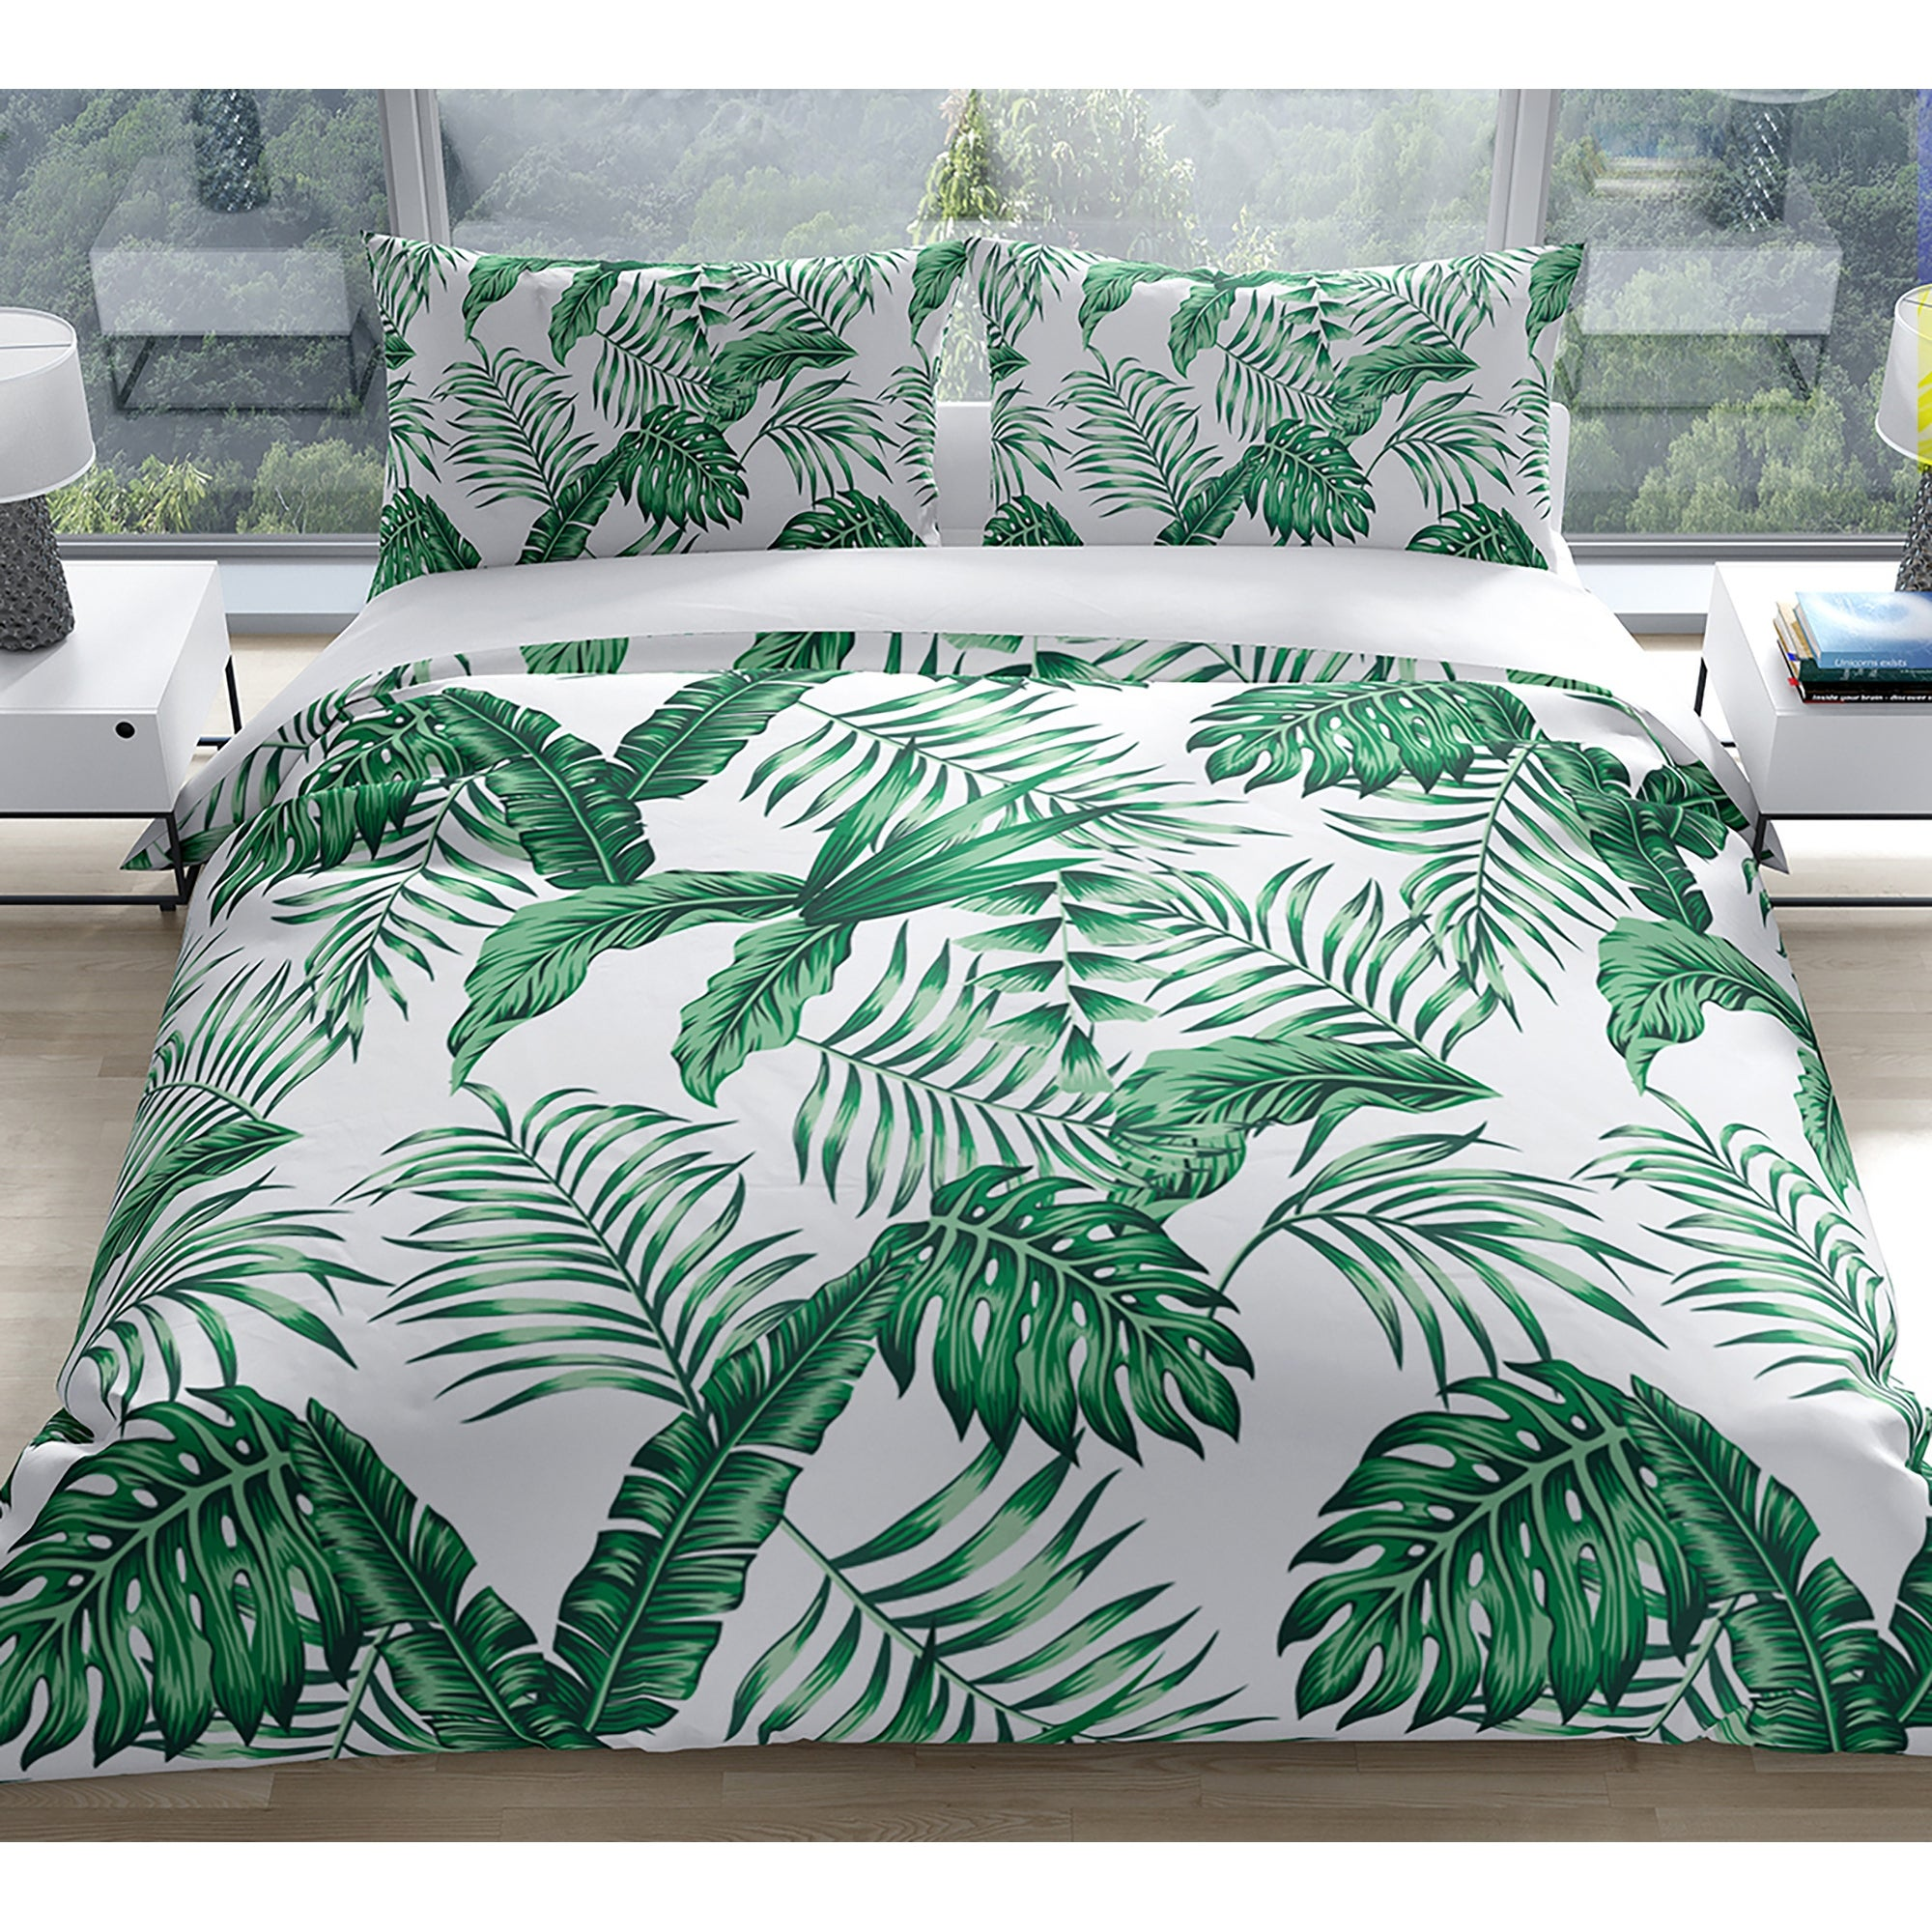 Green Tropical Leaves Duvet Cover By Kavka Designs Overstock 30879034 Silhouettes of evergreen compound leaves, different shapes, leaves made of thin curved lines. green tropical leaves duvet cover by kavka designs